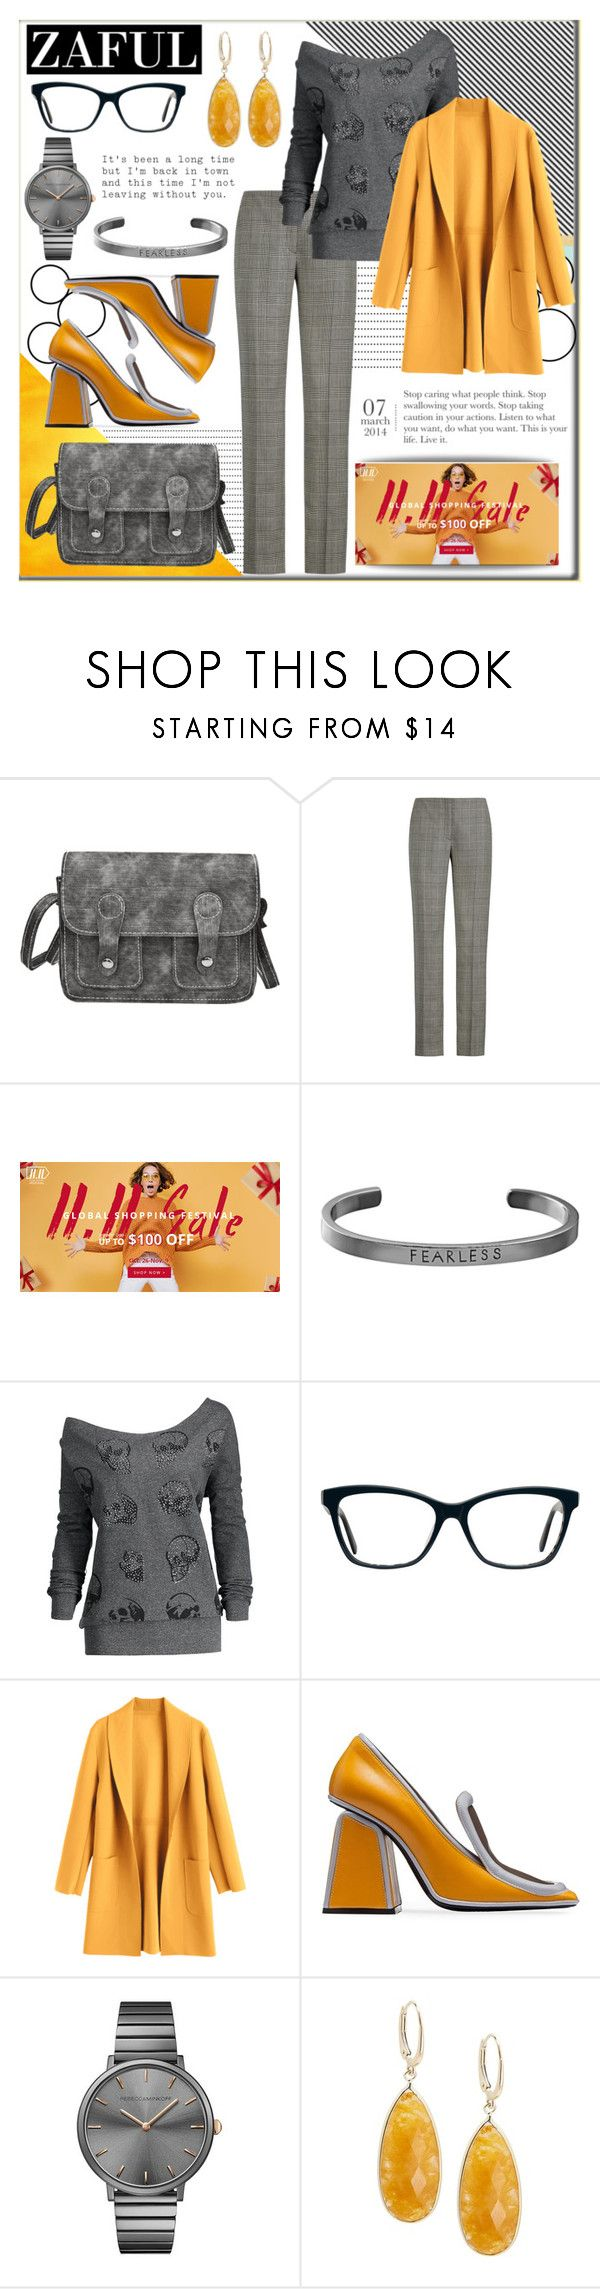 """""""ZAFUL 11.11 SALE !!!"""" by celine-diaz-1 ❤ liked on Polyvore featuring Ralph Lauren, Steve Madden, Marni, Rebecca Minkoff and Saks Fifth Avenue"""